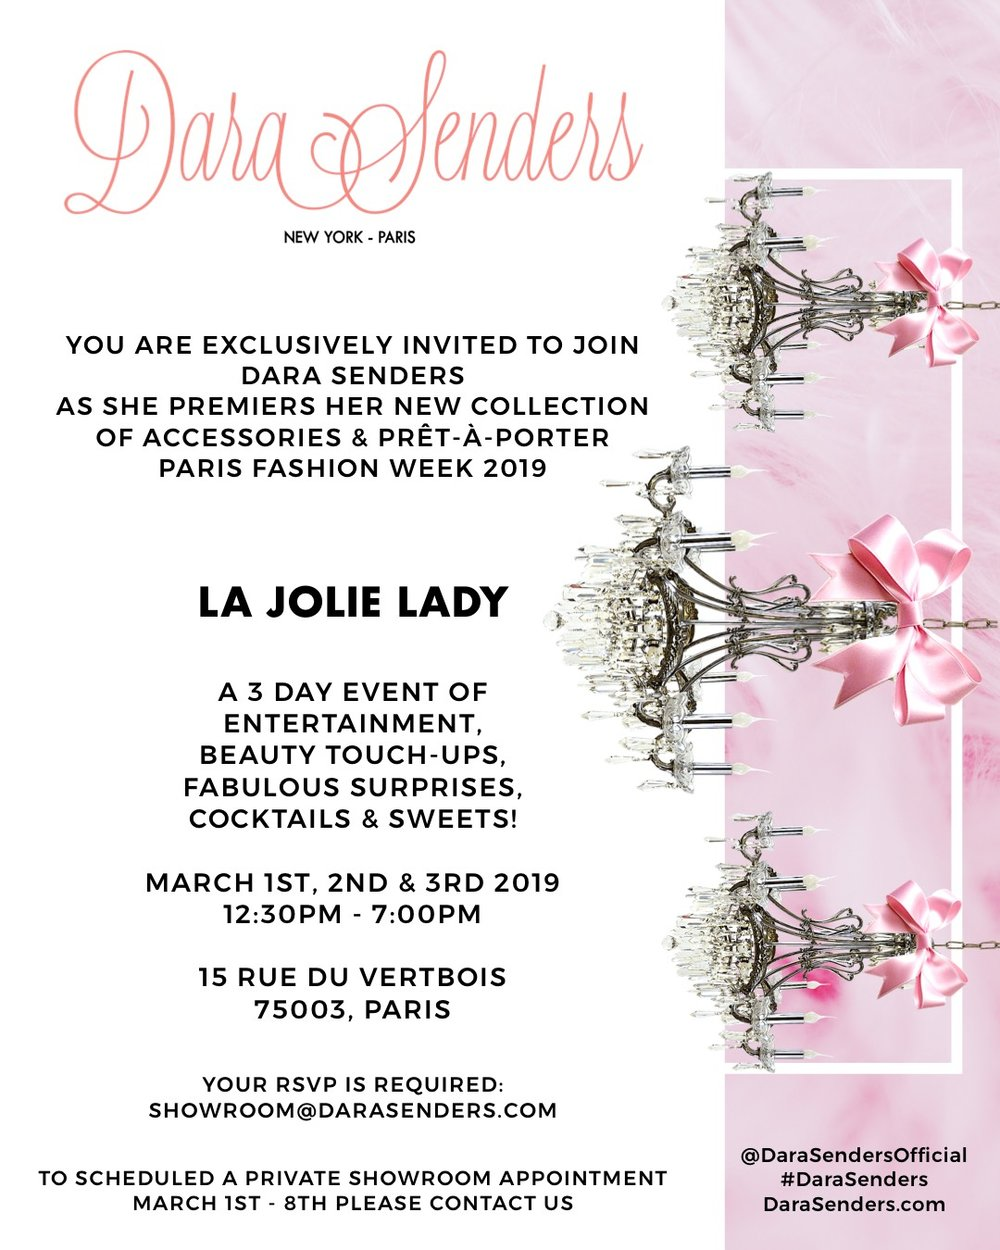 DARA SENDERS - PARIS FASHION WEEK F/W19 PRESENTATION    MARCH 1ST - 3RD, 2019 - RUE DU VERTBOIS